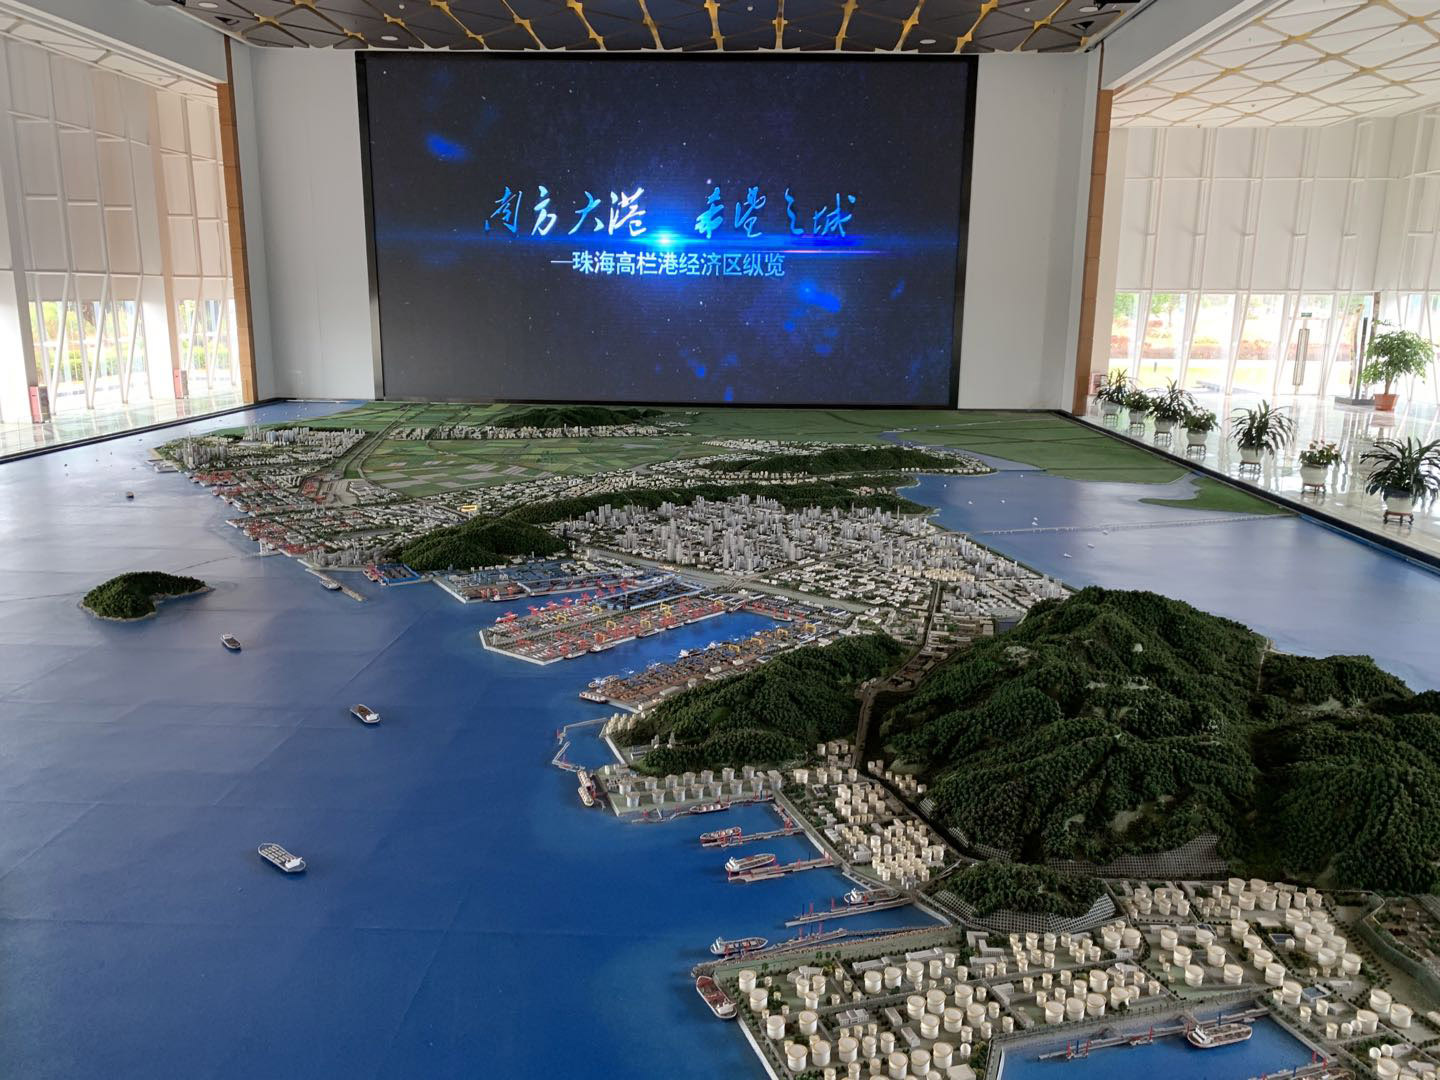 UM plans to launch a product onto the market by working with Zhuhai Gaolan Port Industrial Park